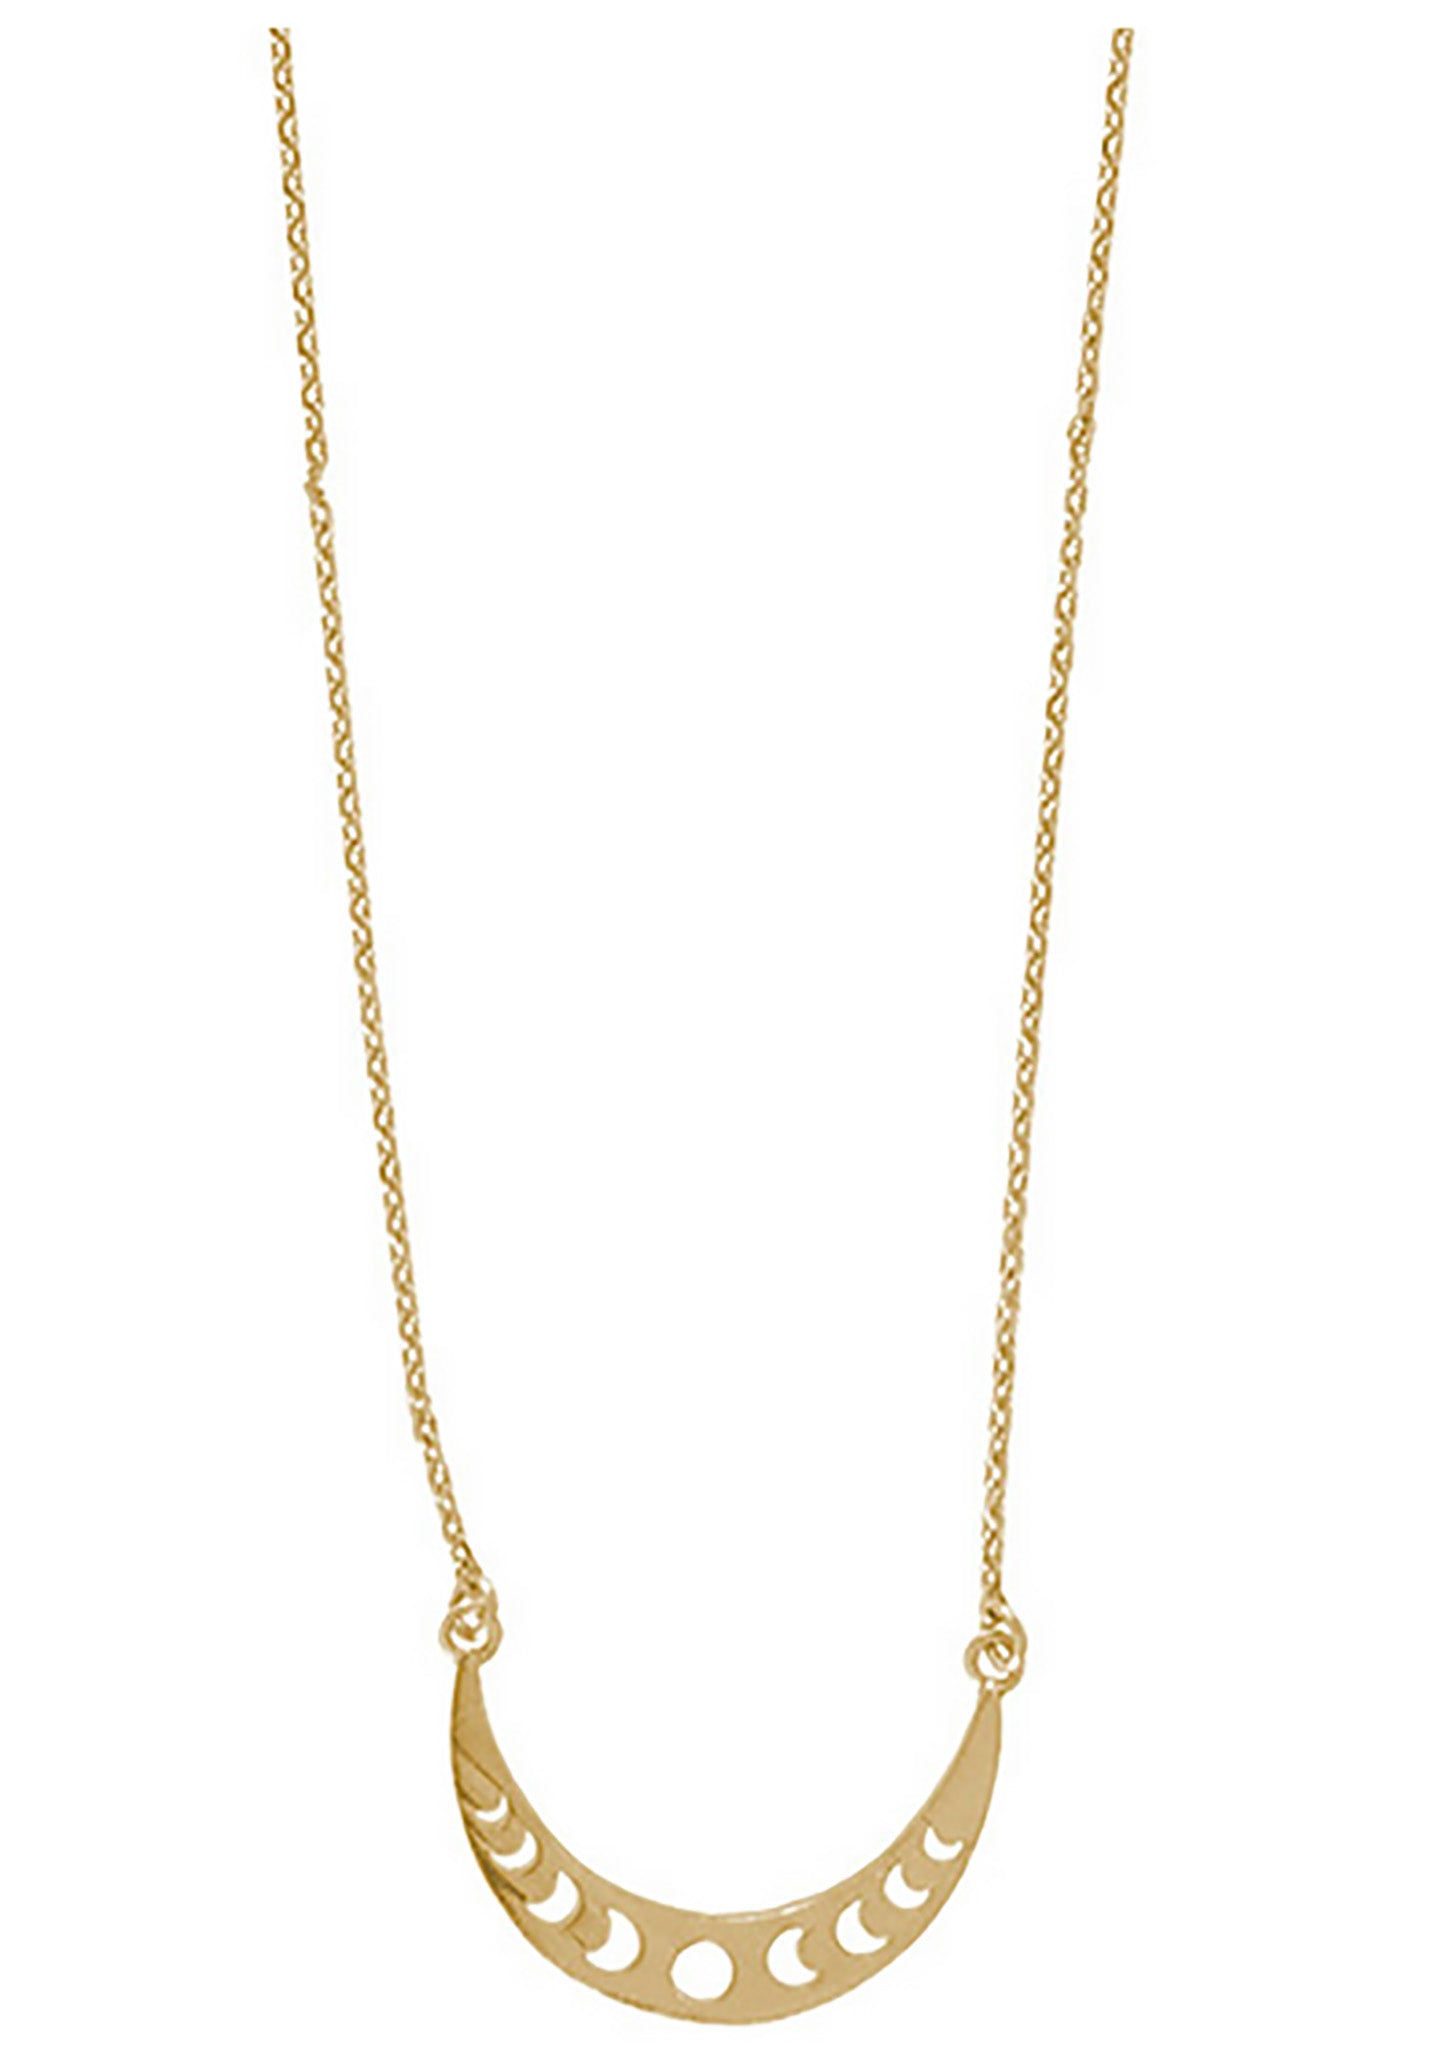 Wanderlust + Co Full Moon Cresent Necklace in Gold